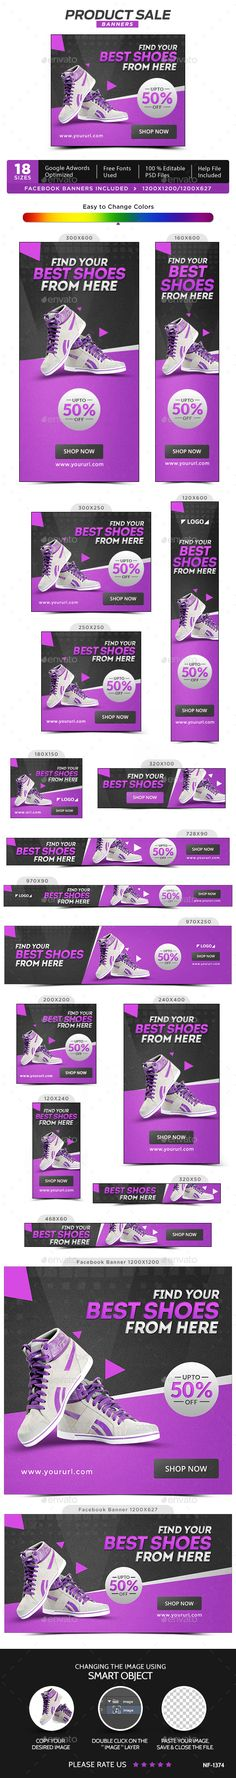 Product Sale Banners Template PSD. Download here: http://graphicriver.net/item/product-sale-banners/16709017?ref=ksioks